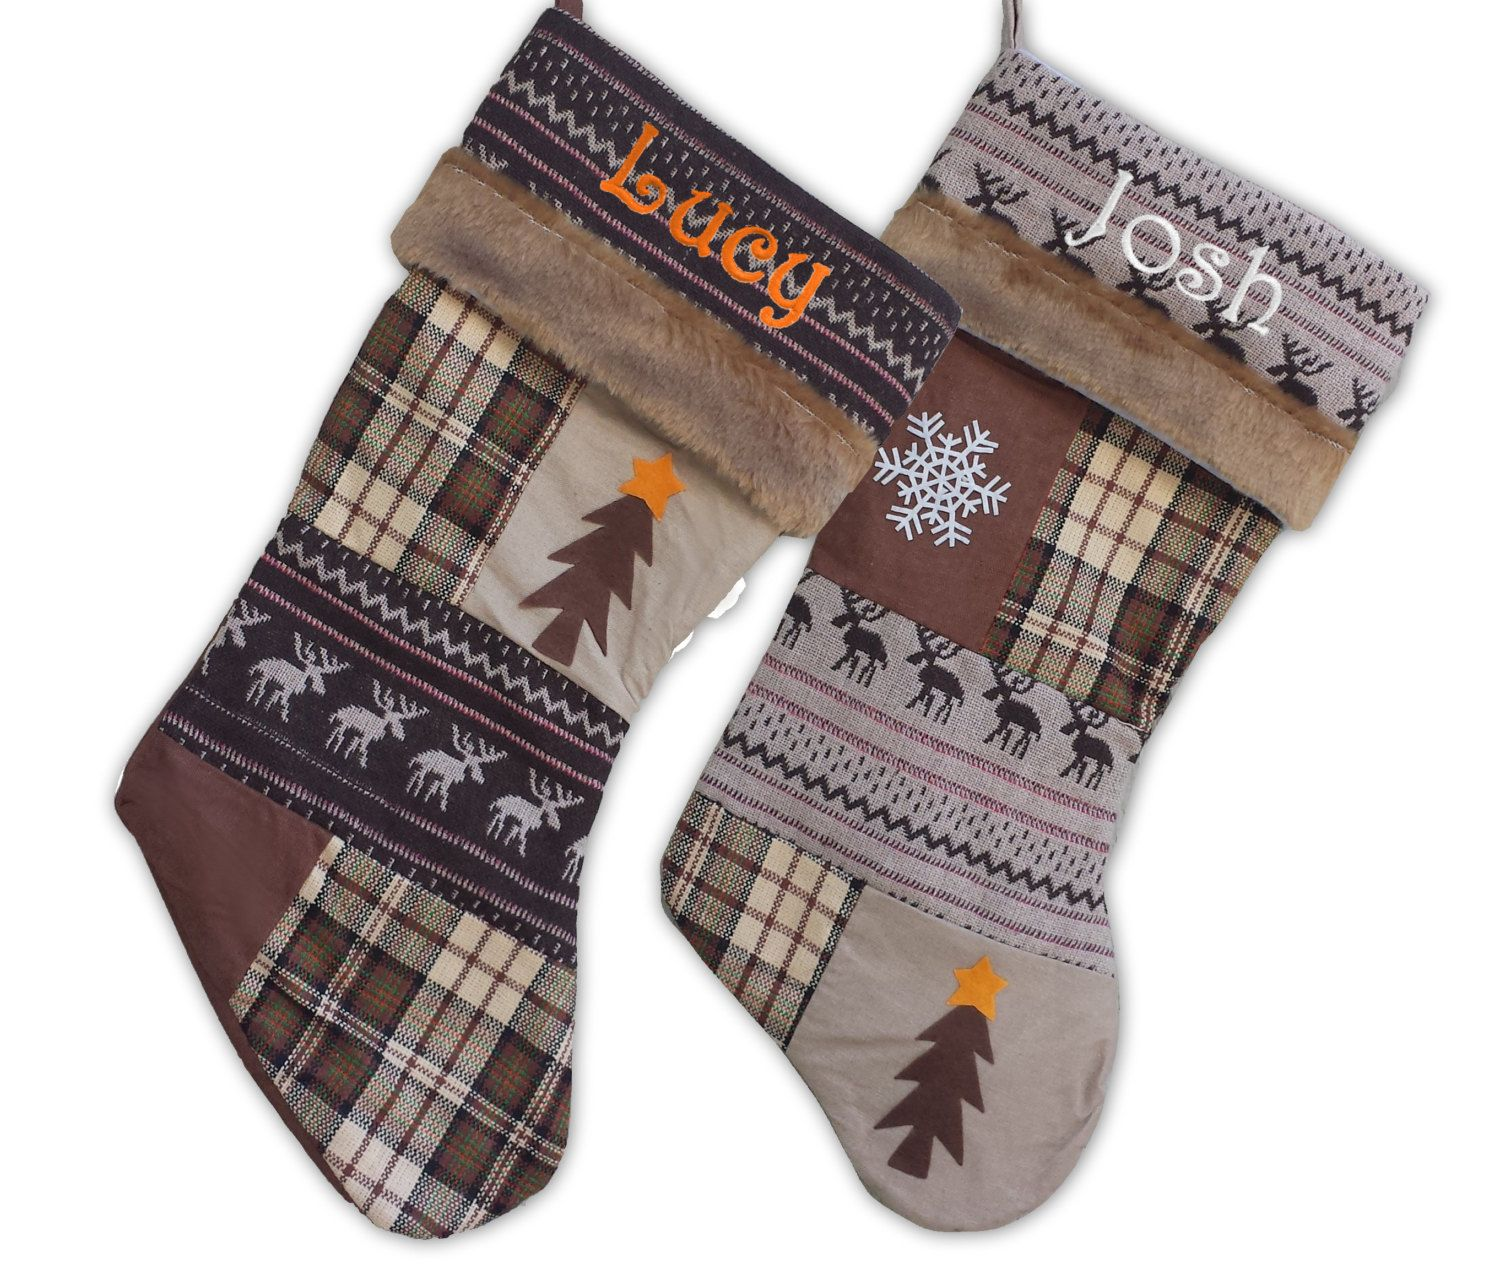 Rustic Lodge Christmas Stocking Embroidered Moose Tree Snowflake Plaid Patchwork Personalized Stockings Brown Beige Primitive Christmas Hunt by eugenie2 on Etsy https://www.etsy.com/listing/213240004/rustic-lodge-christmas-stocking